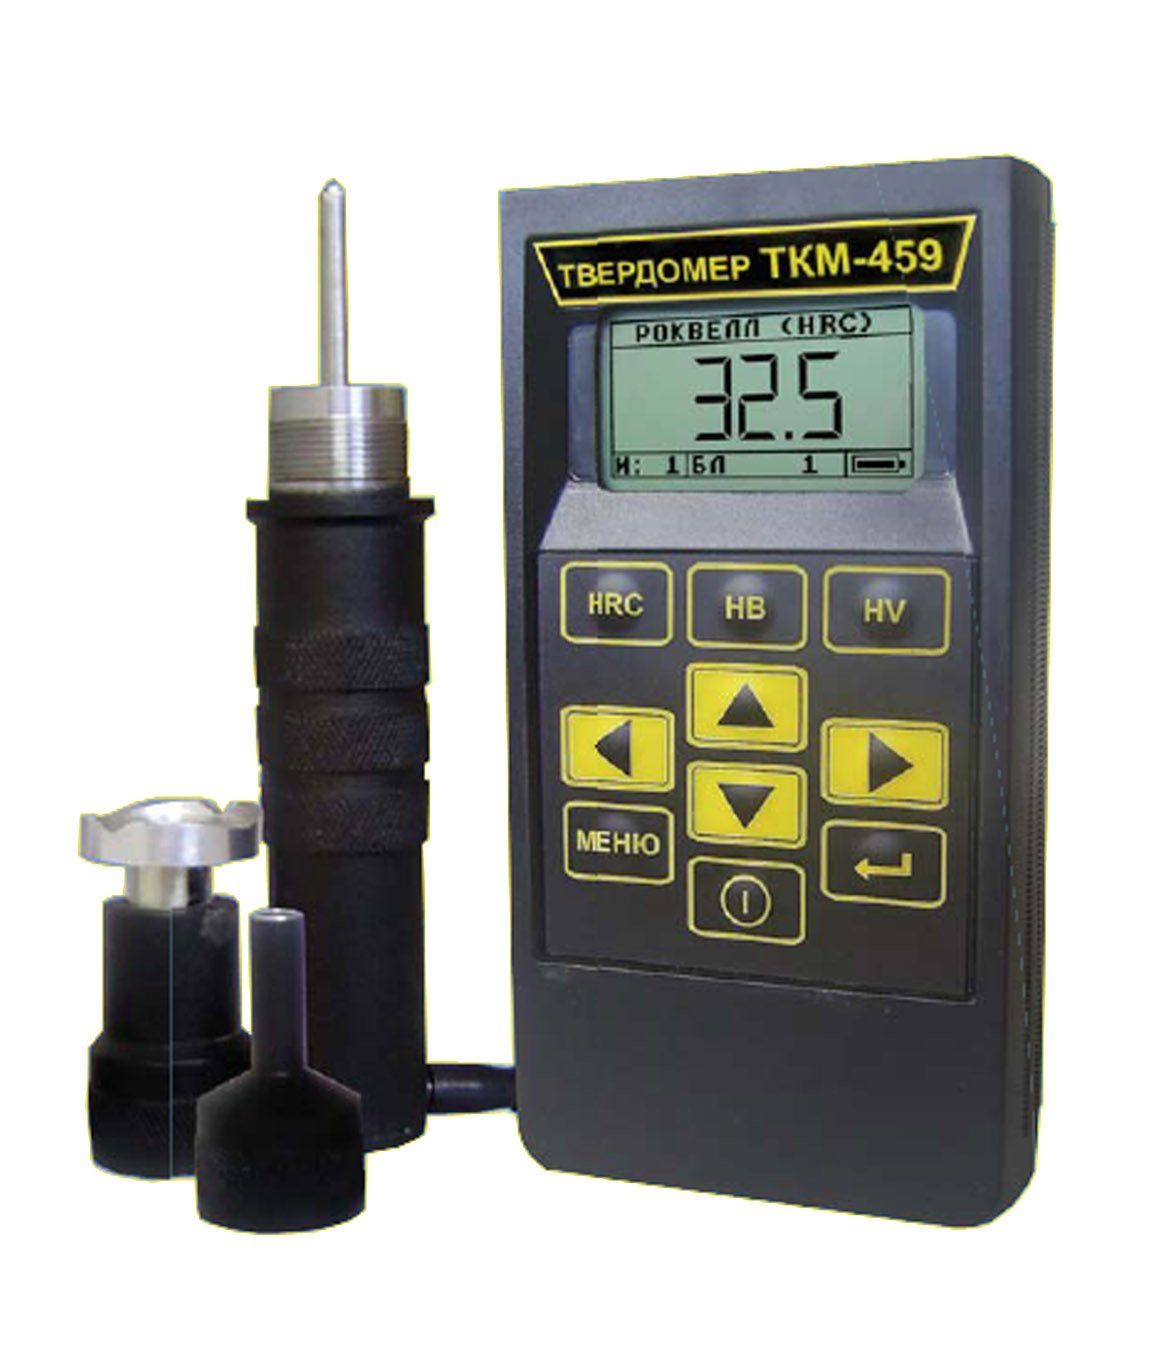 Ultrasonic Portable Hardness Tester Tkm-459